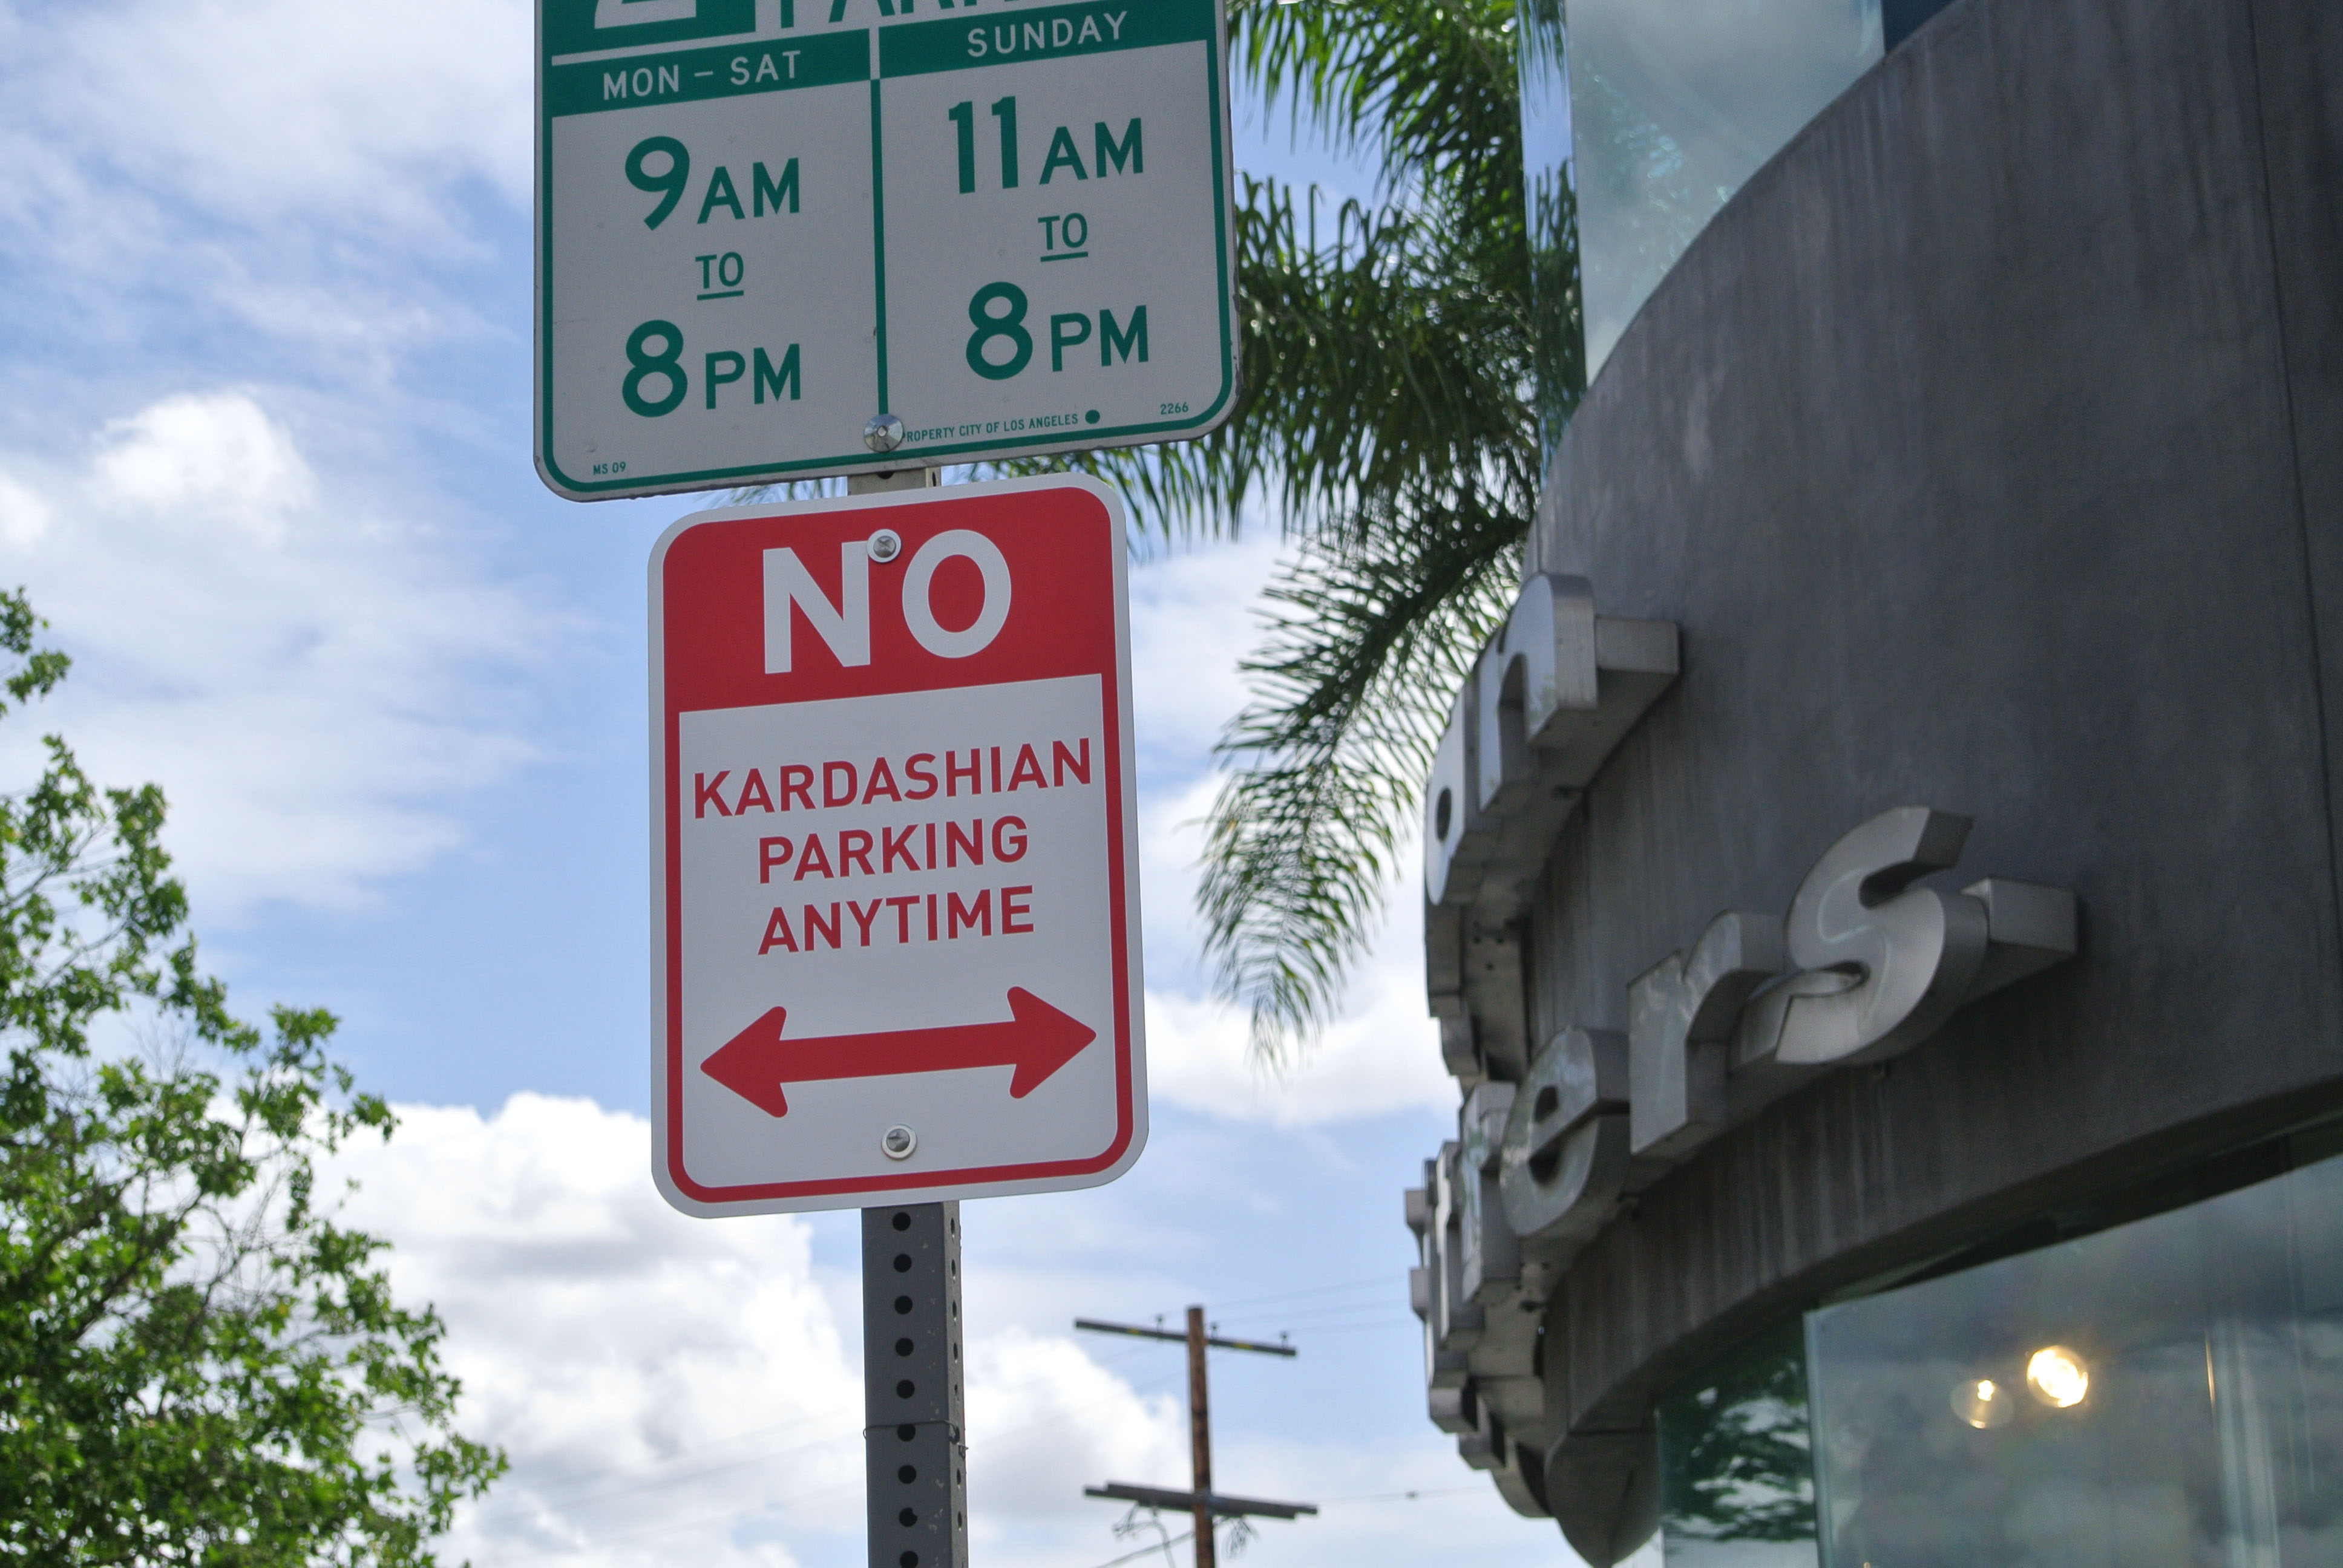 No Kardashian Parking  sign by artist Plastic Jesus in Los Angeles, Calif.